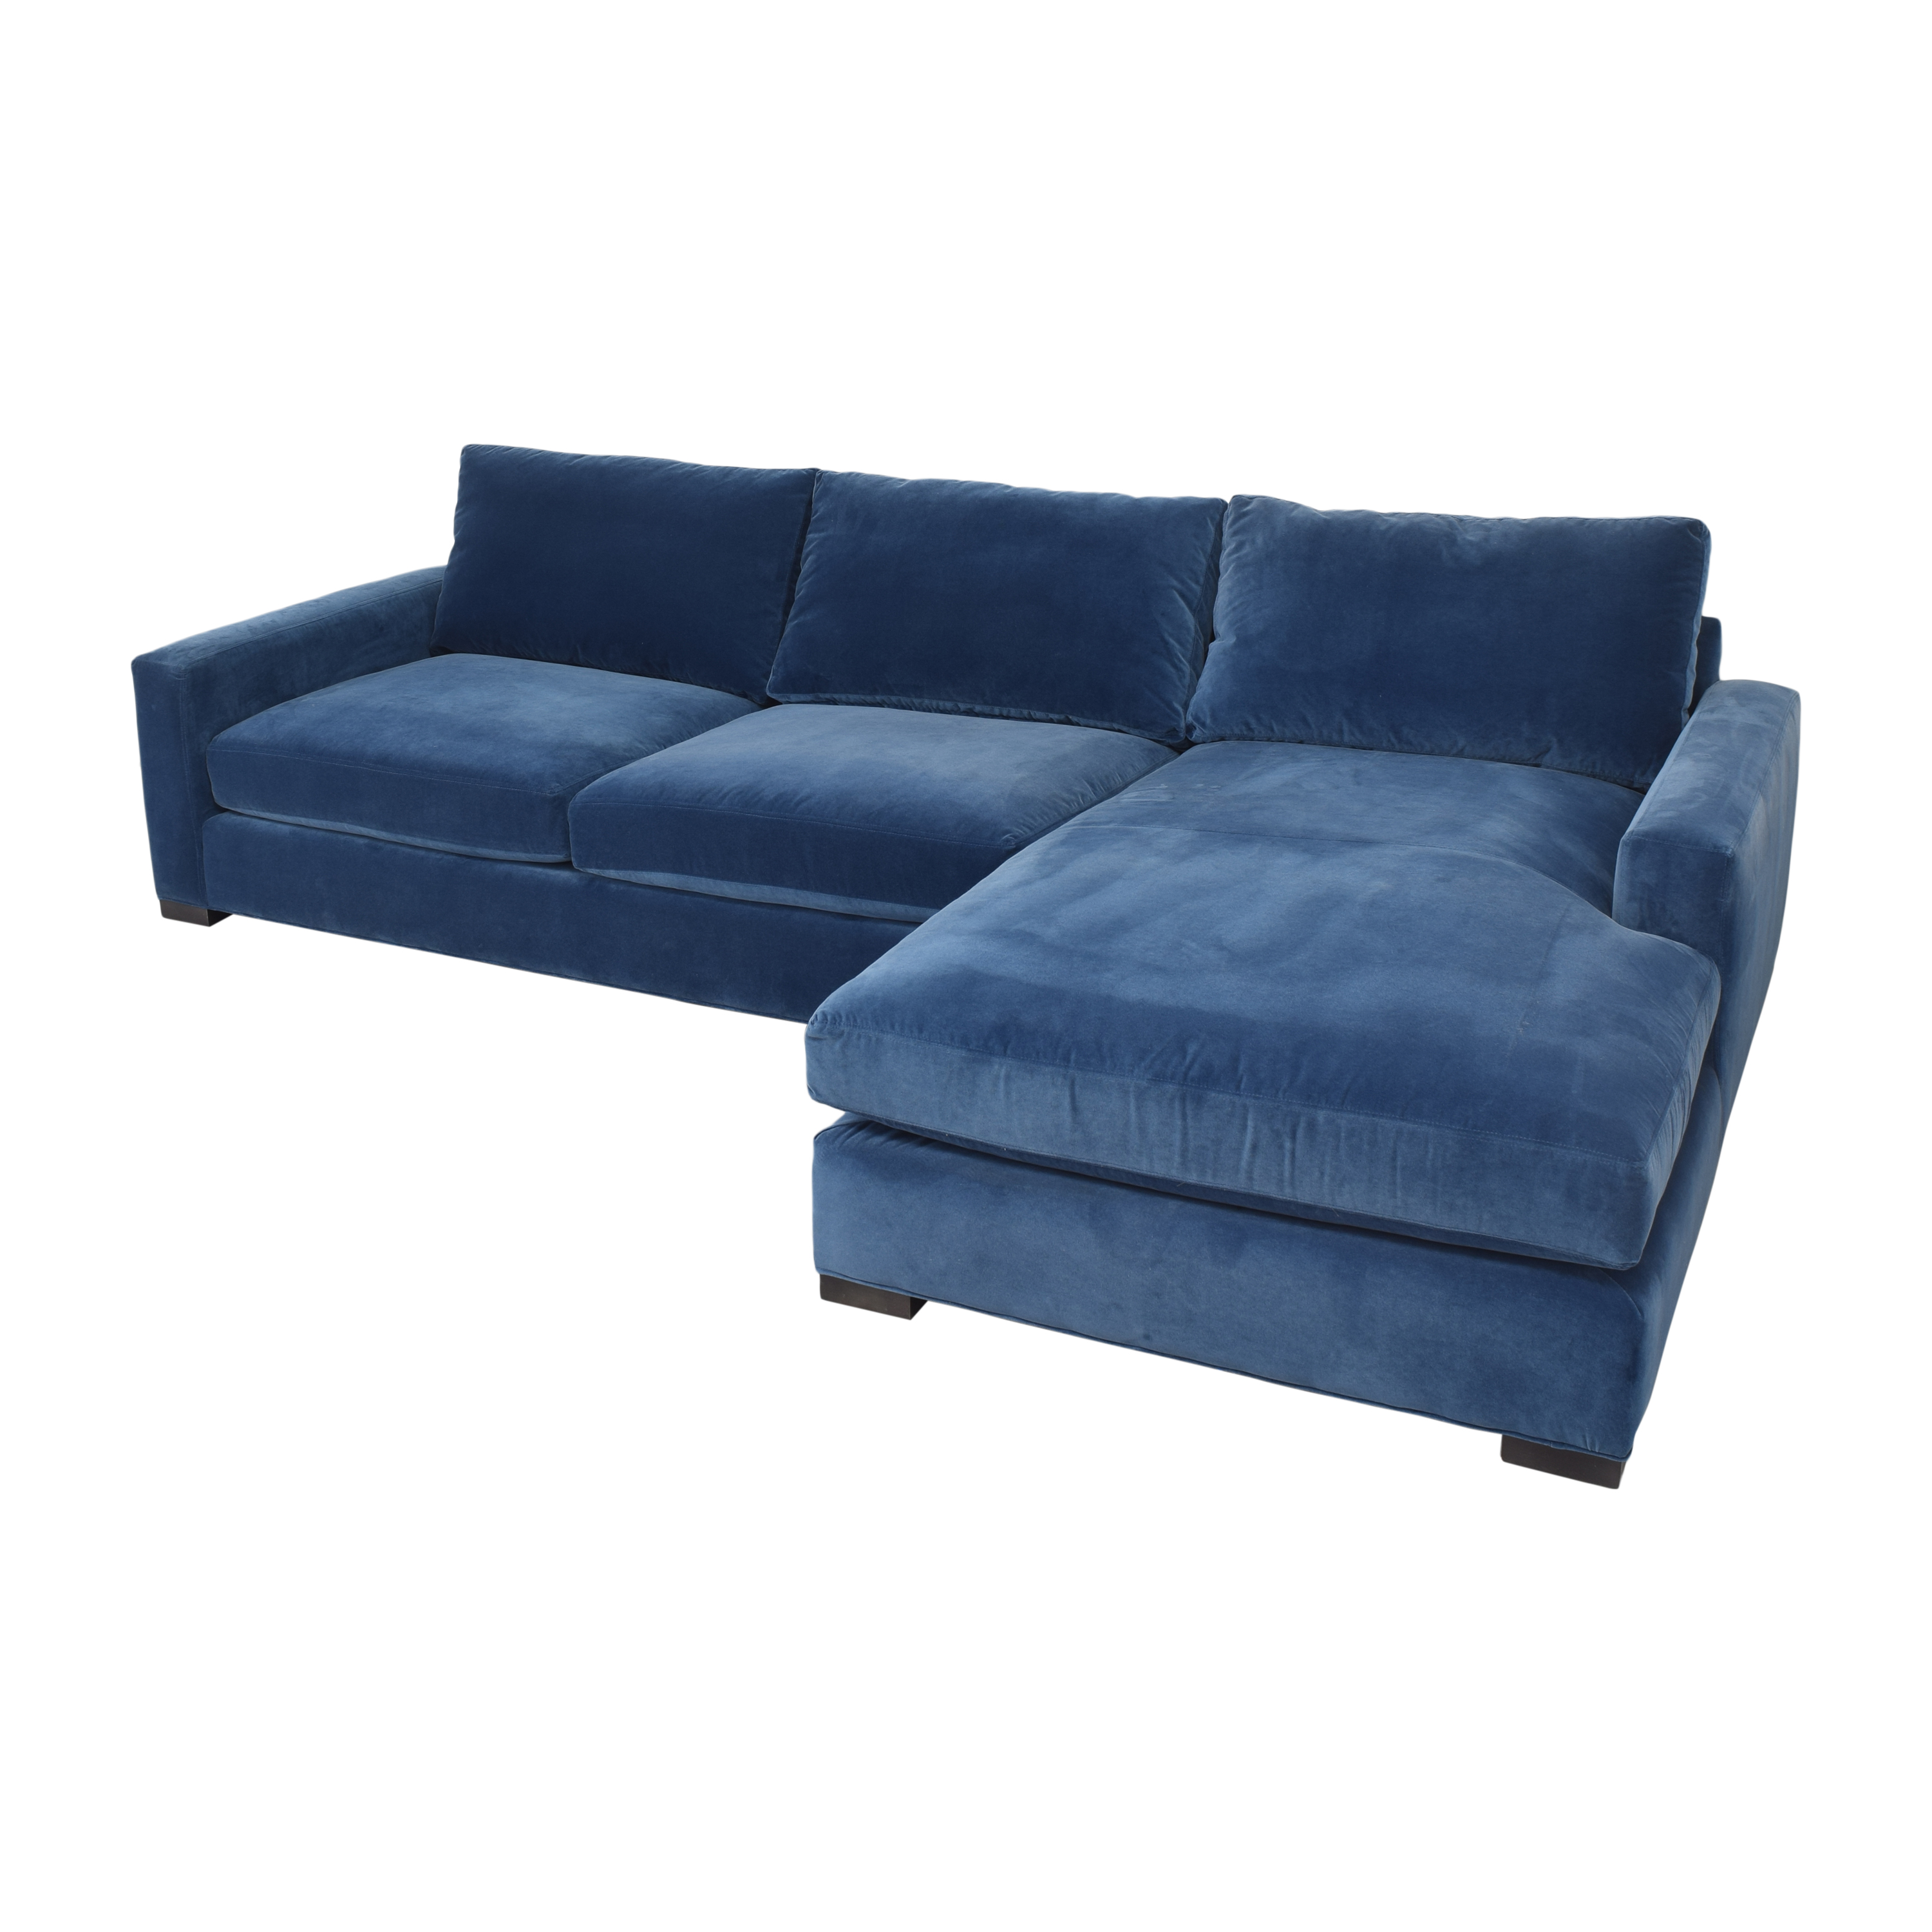 Room & Board Room & Board Metro Sectional Sofa with Chaise nyc